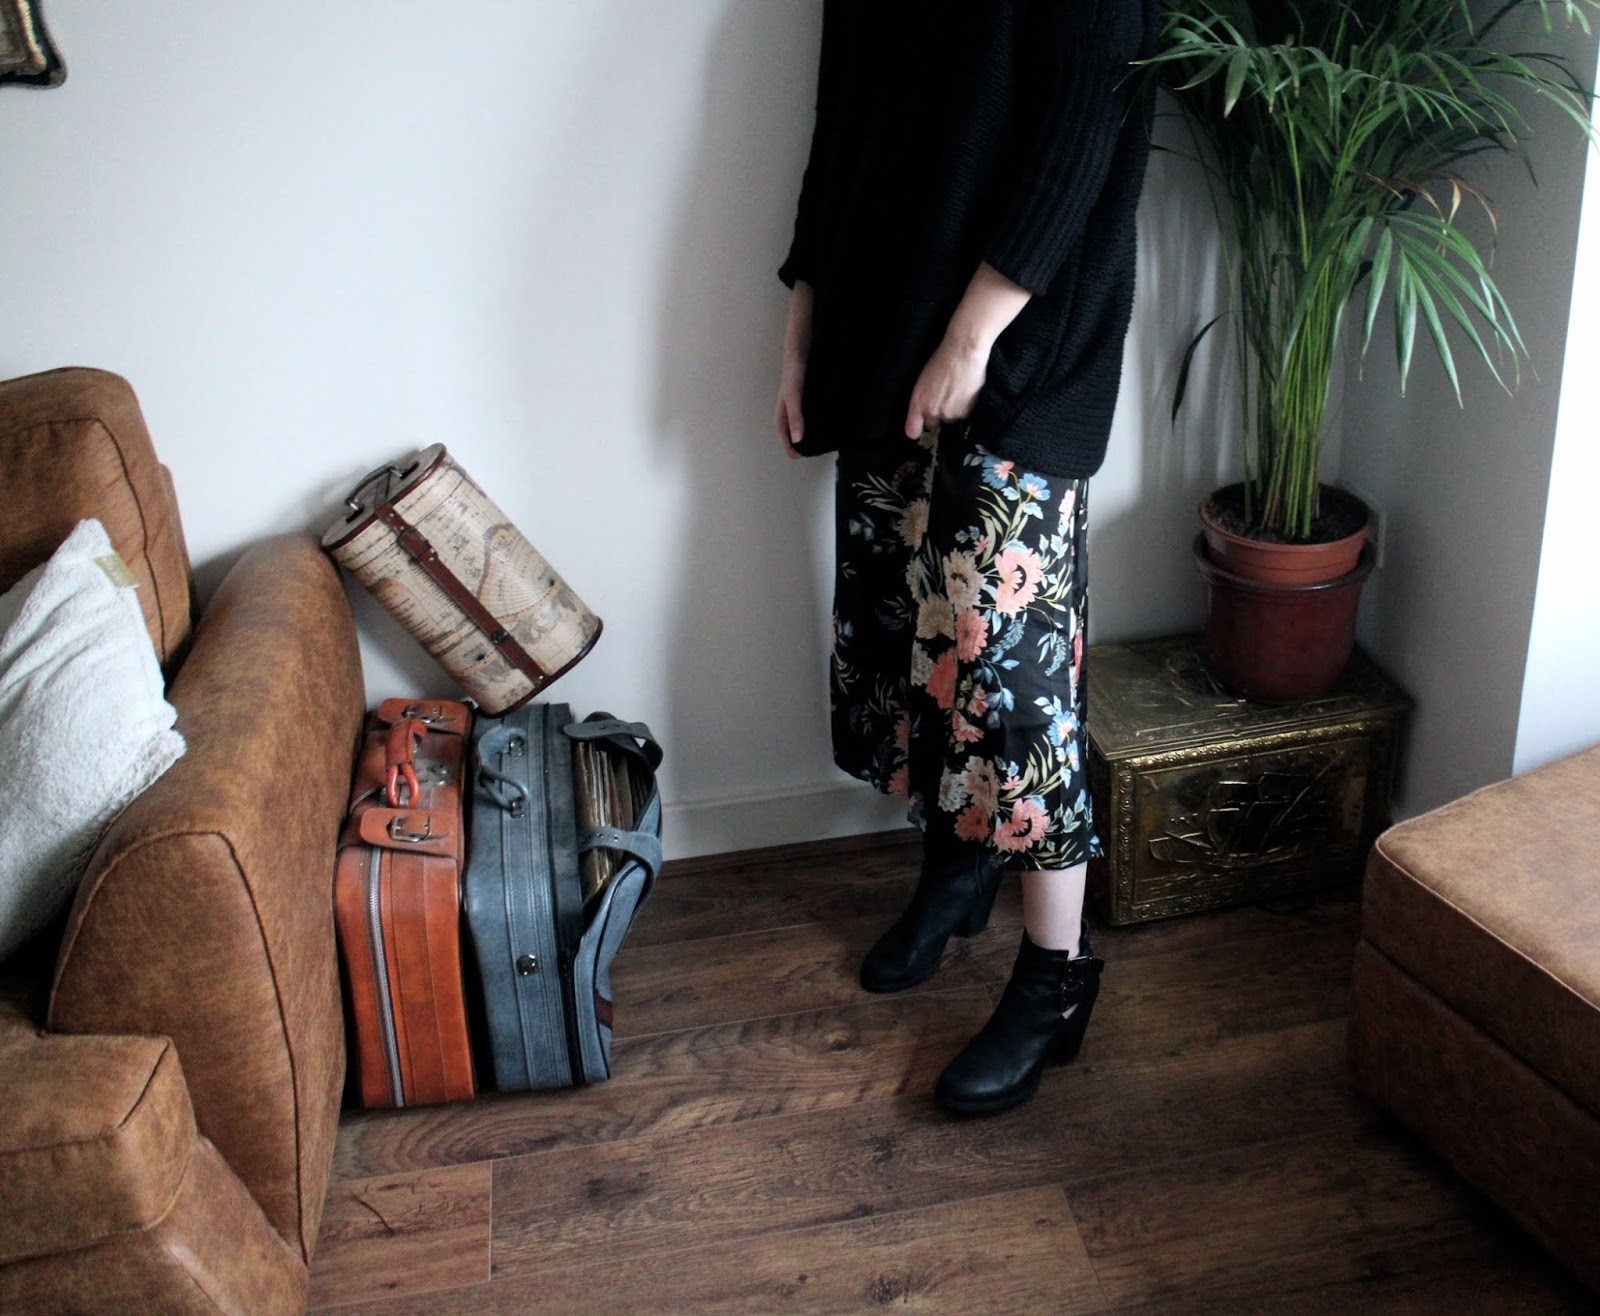 Vintage style room and crop of girl wearing floral maxi dress and black jumper